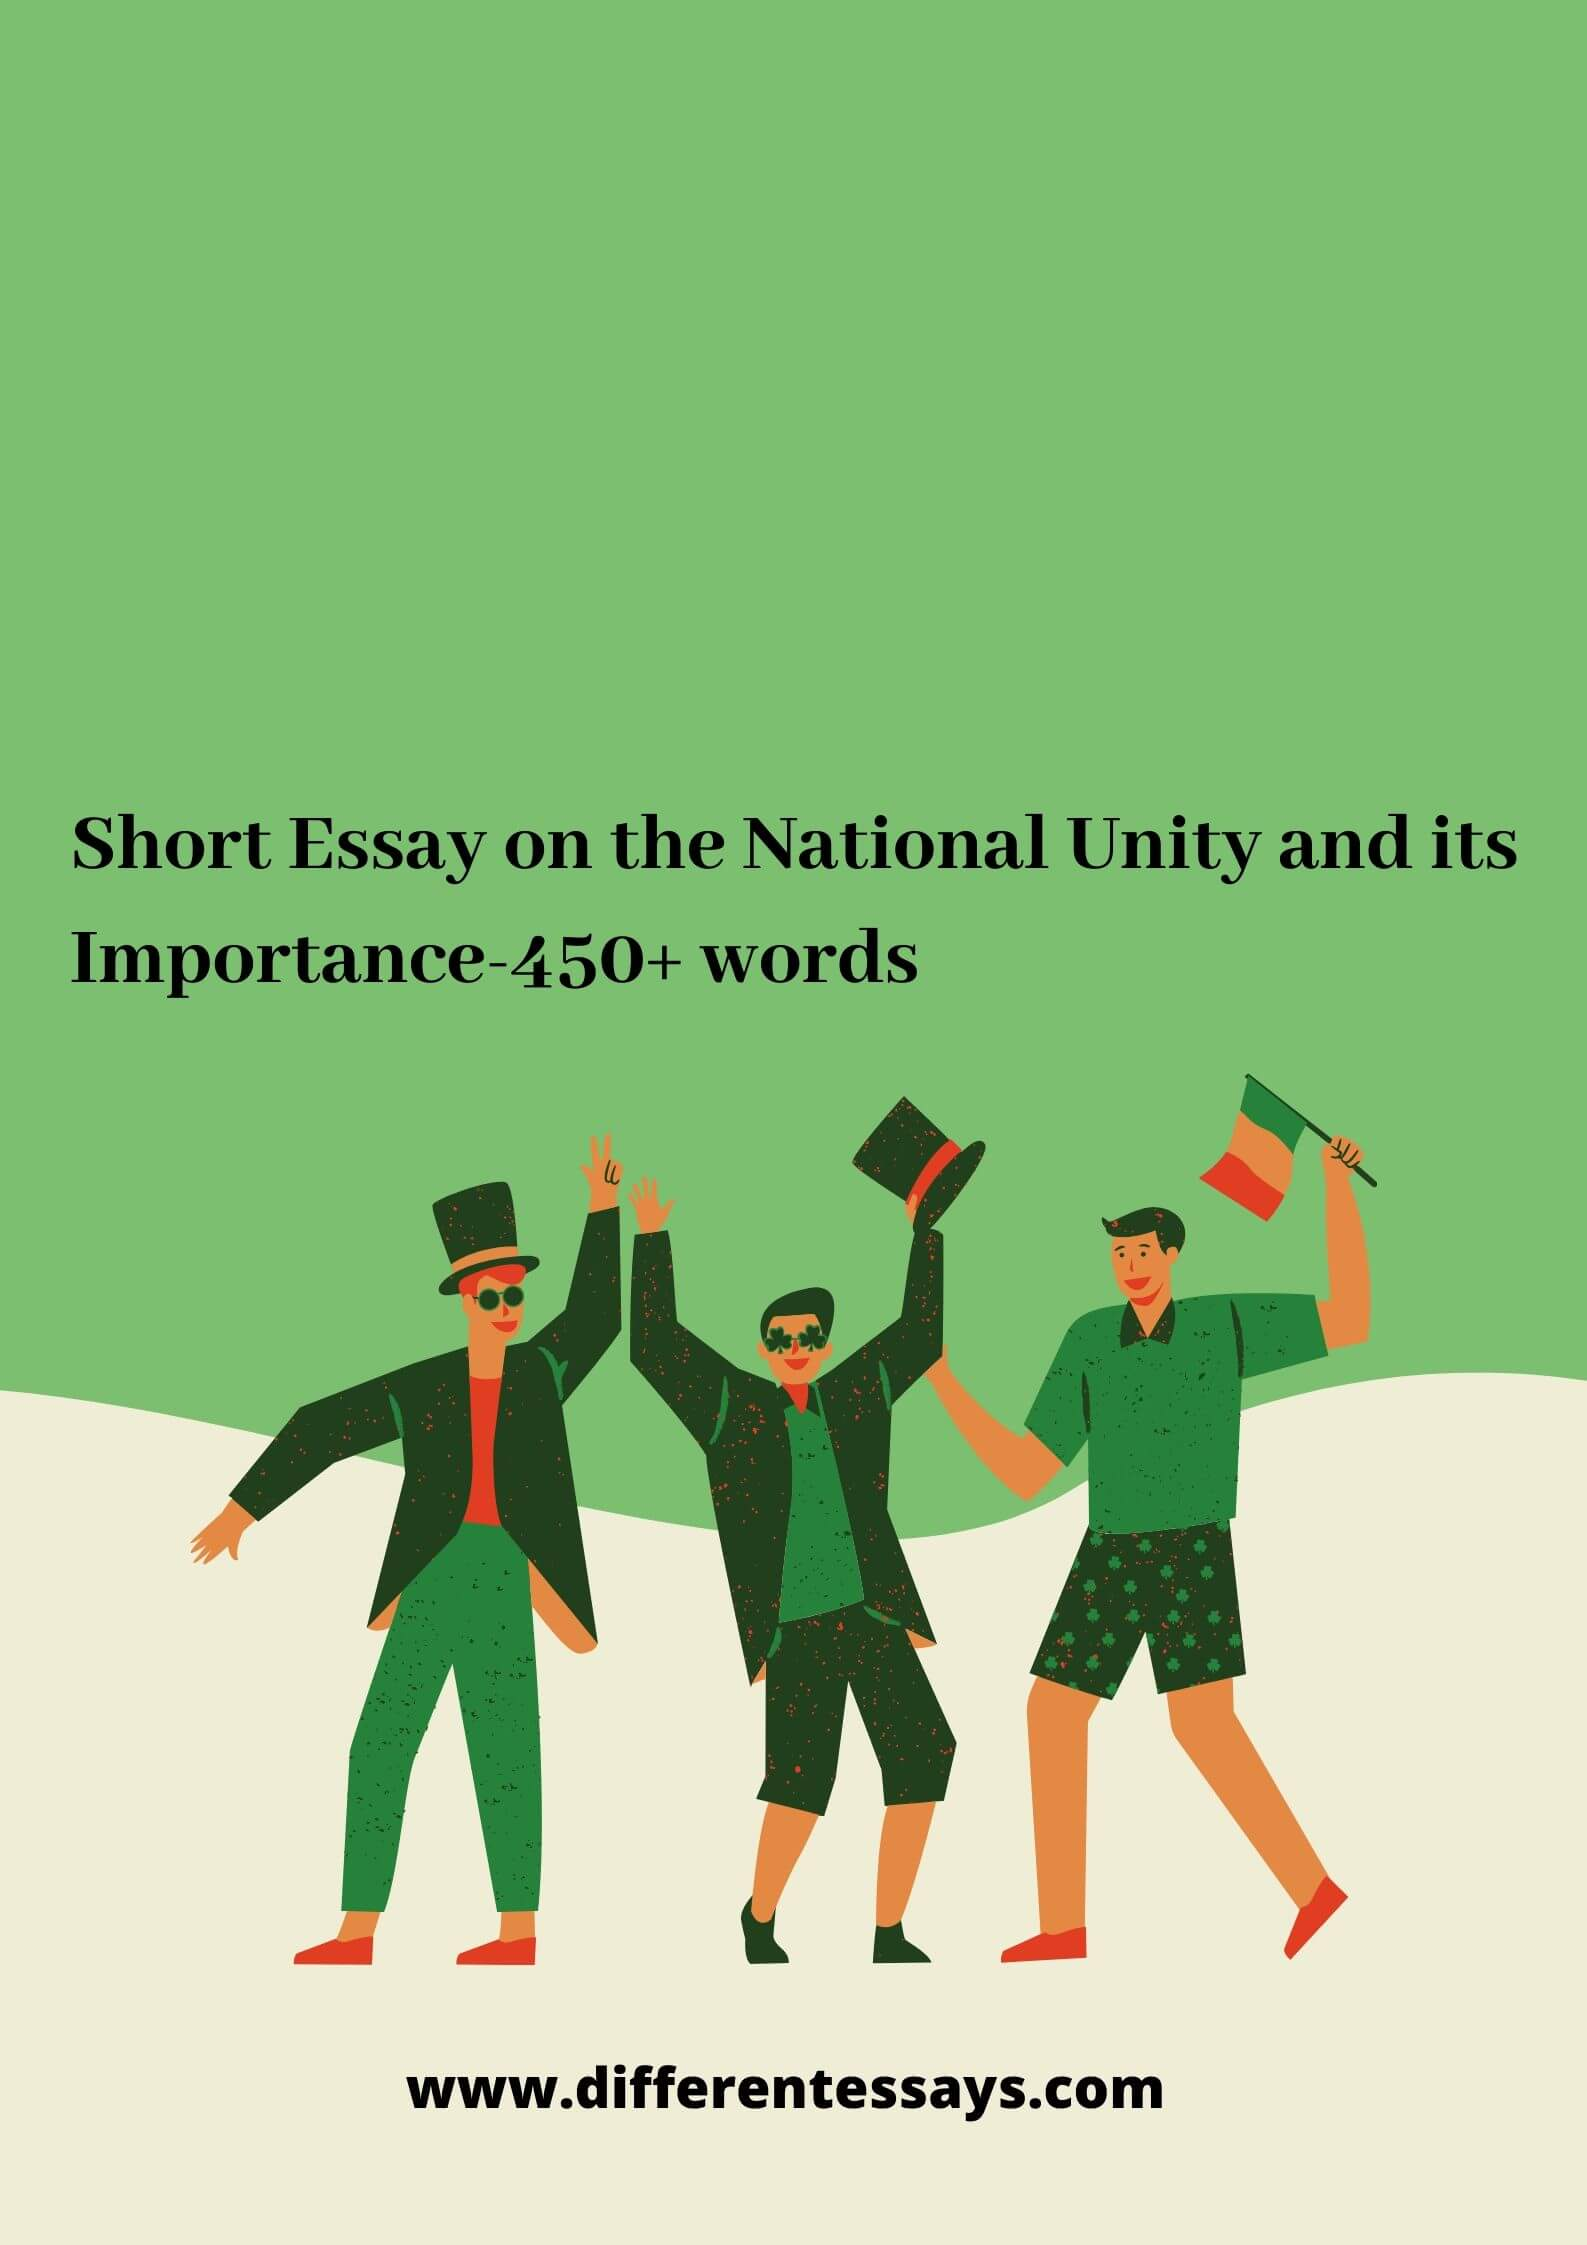 Short Essay on the National Unity and its Importance-450+ words